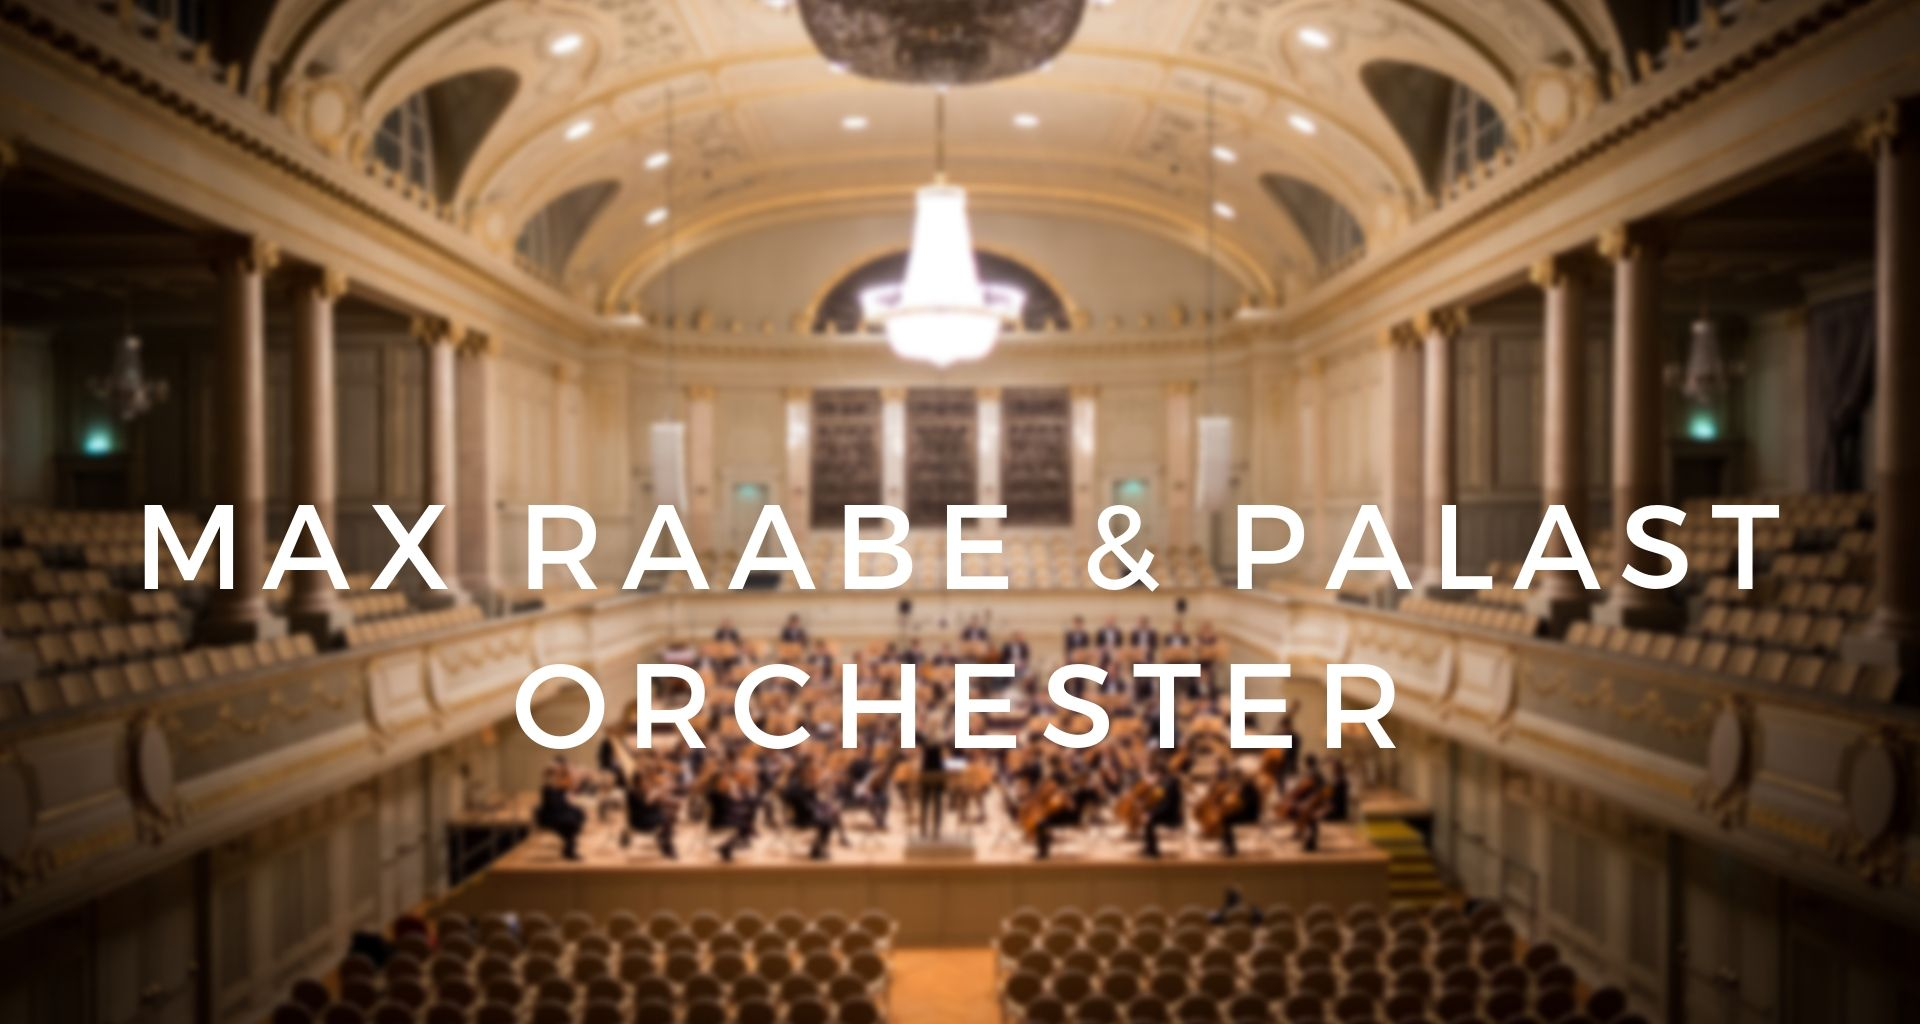 Top Event - Max Raabe & Palast Orchester